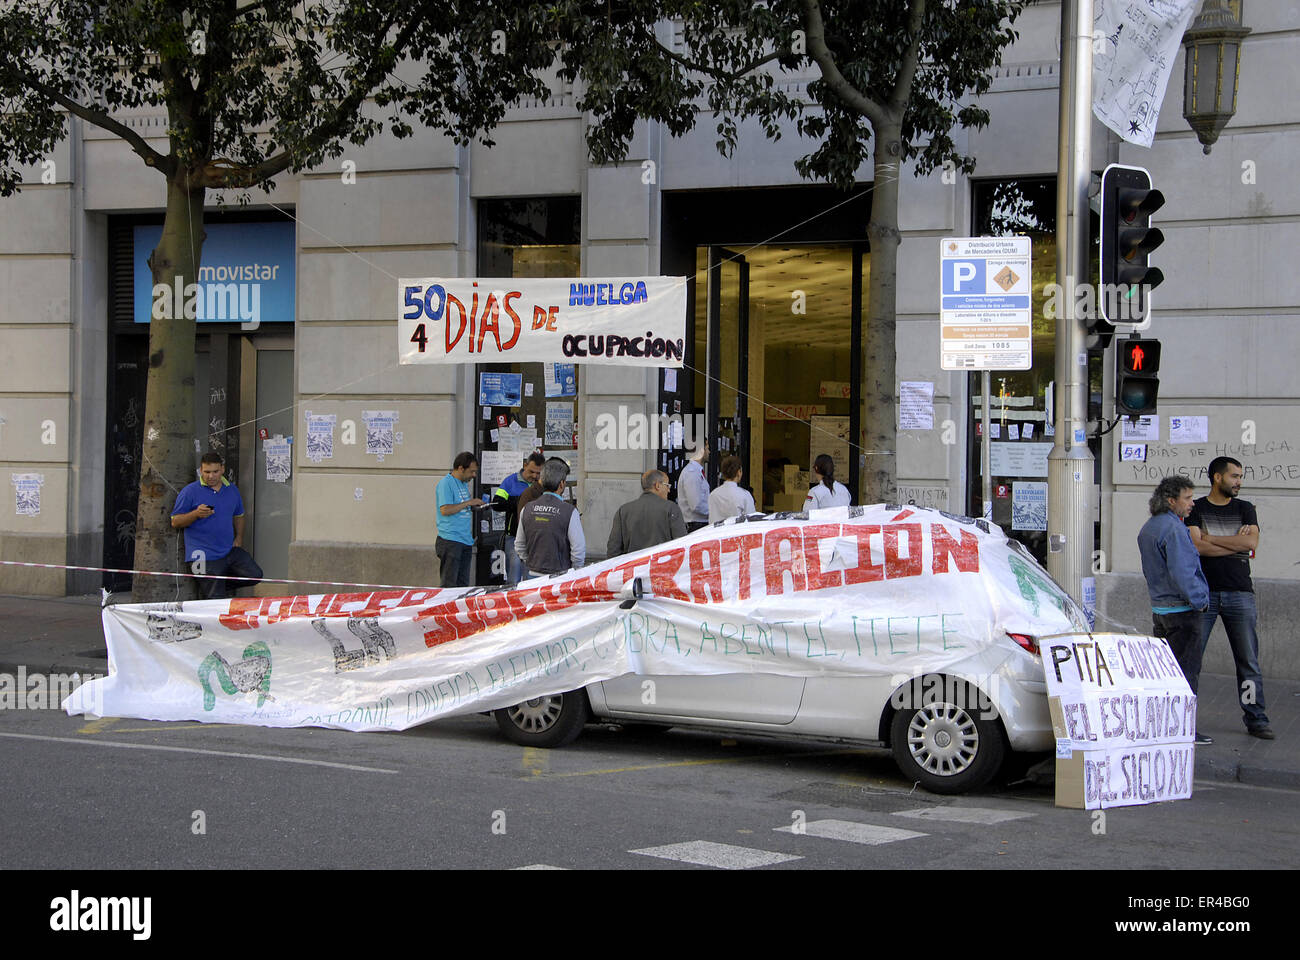 Barcelona, Spain. 27th May, 2015. Day 51 and workers from movistar telefonica company continue  strike.  Spanish - Stock Image